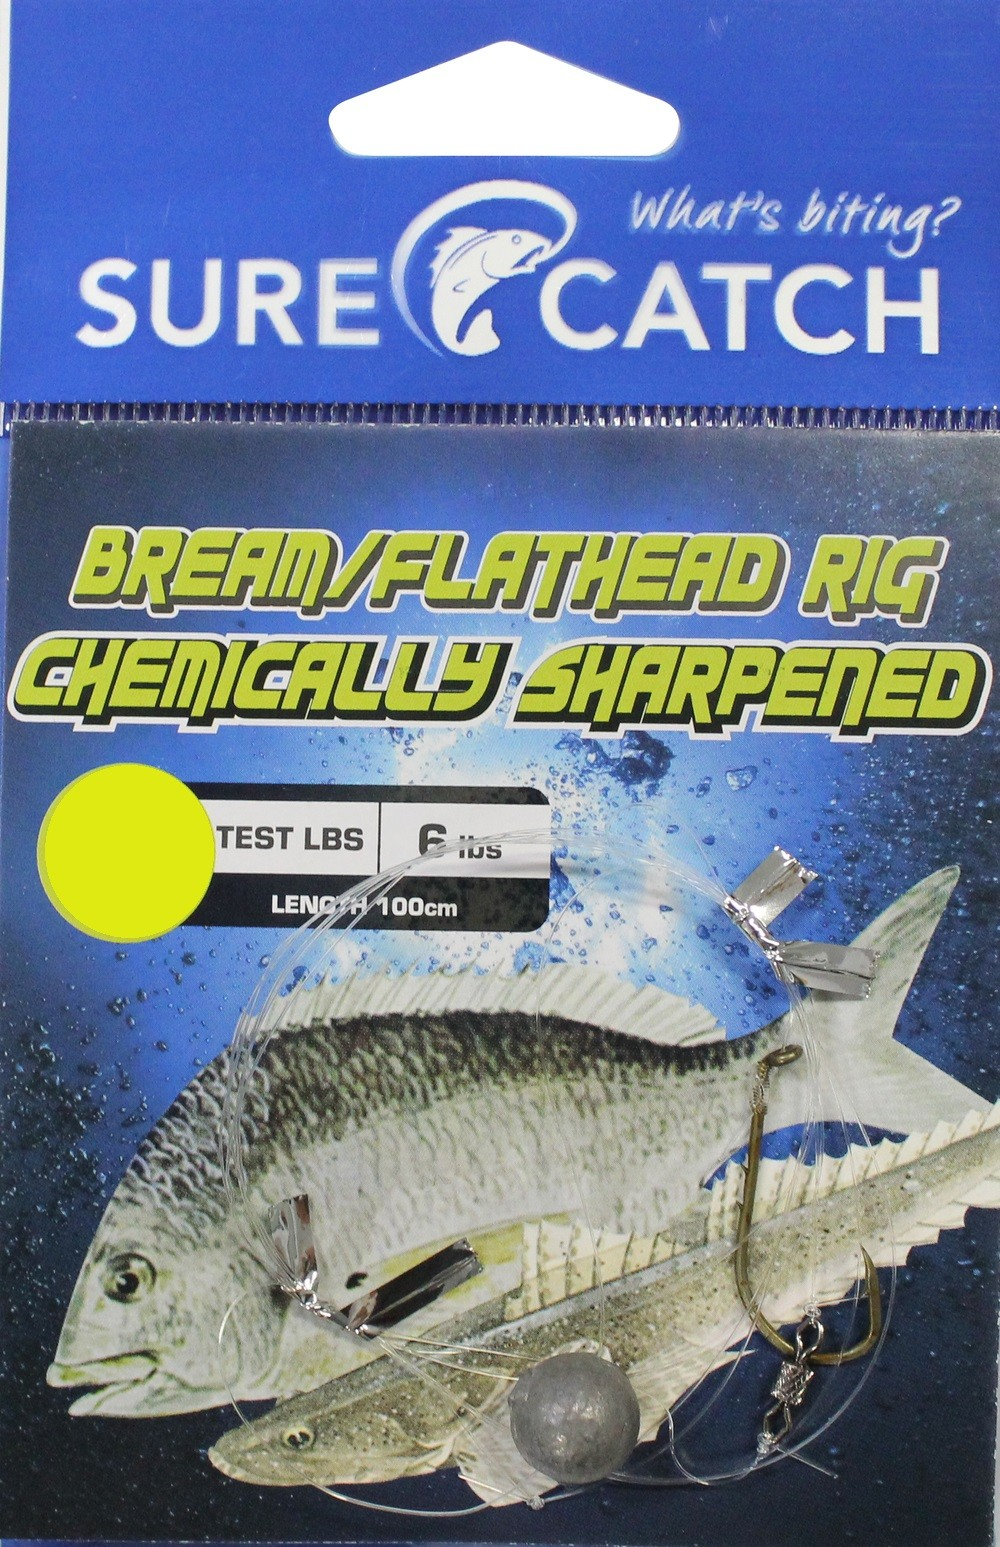 Sure Catch Bream & Flathead Rig Chem/Sharp - Size 2